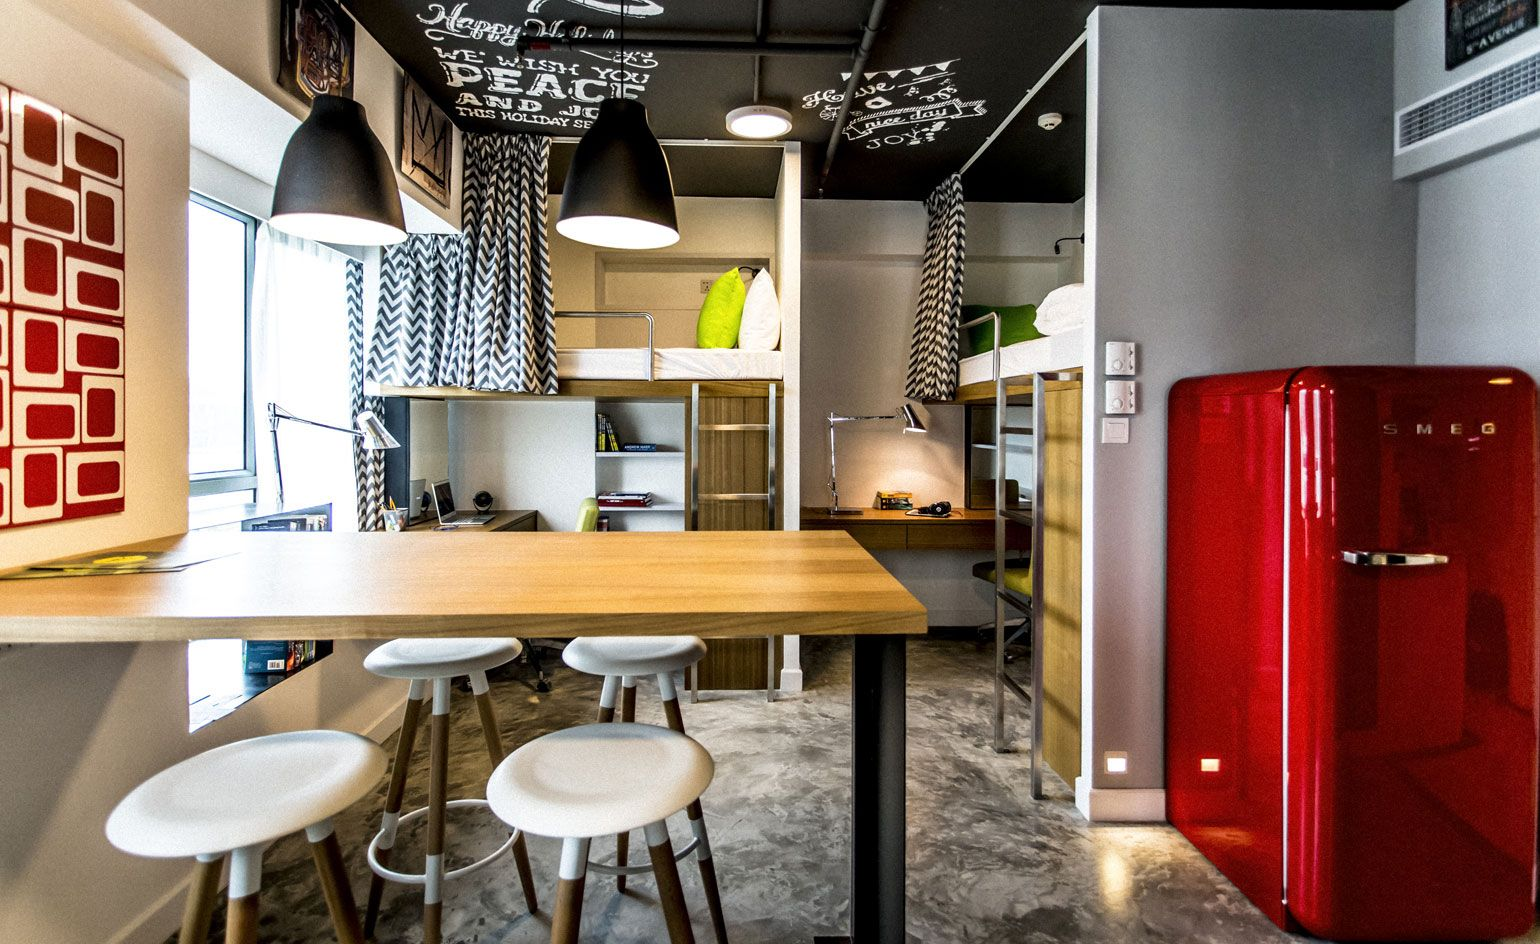 Designer Dorms Private Student Housing Opens In Hong Kongs